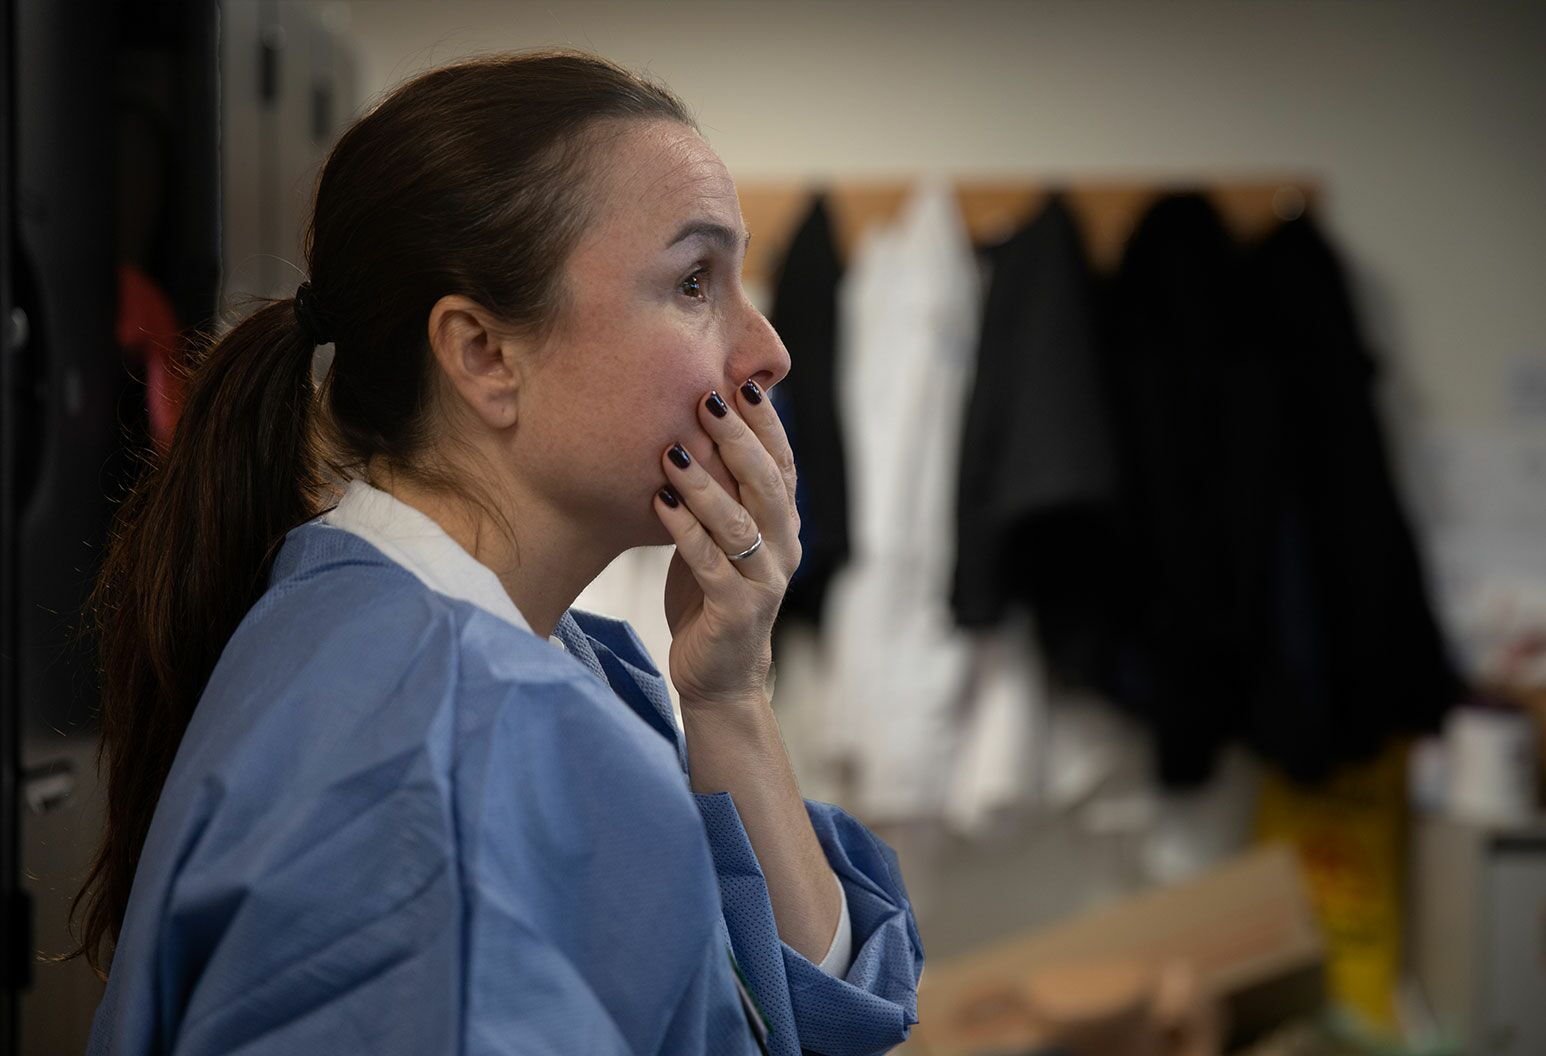 A woman with long tied up hair, stands against a locker wearing blue scrubs with her hand covering her mouth.